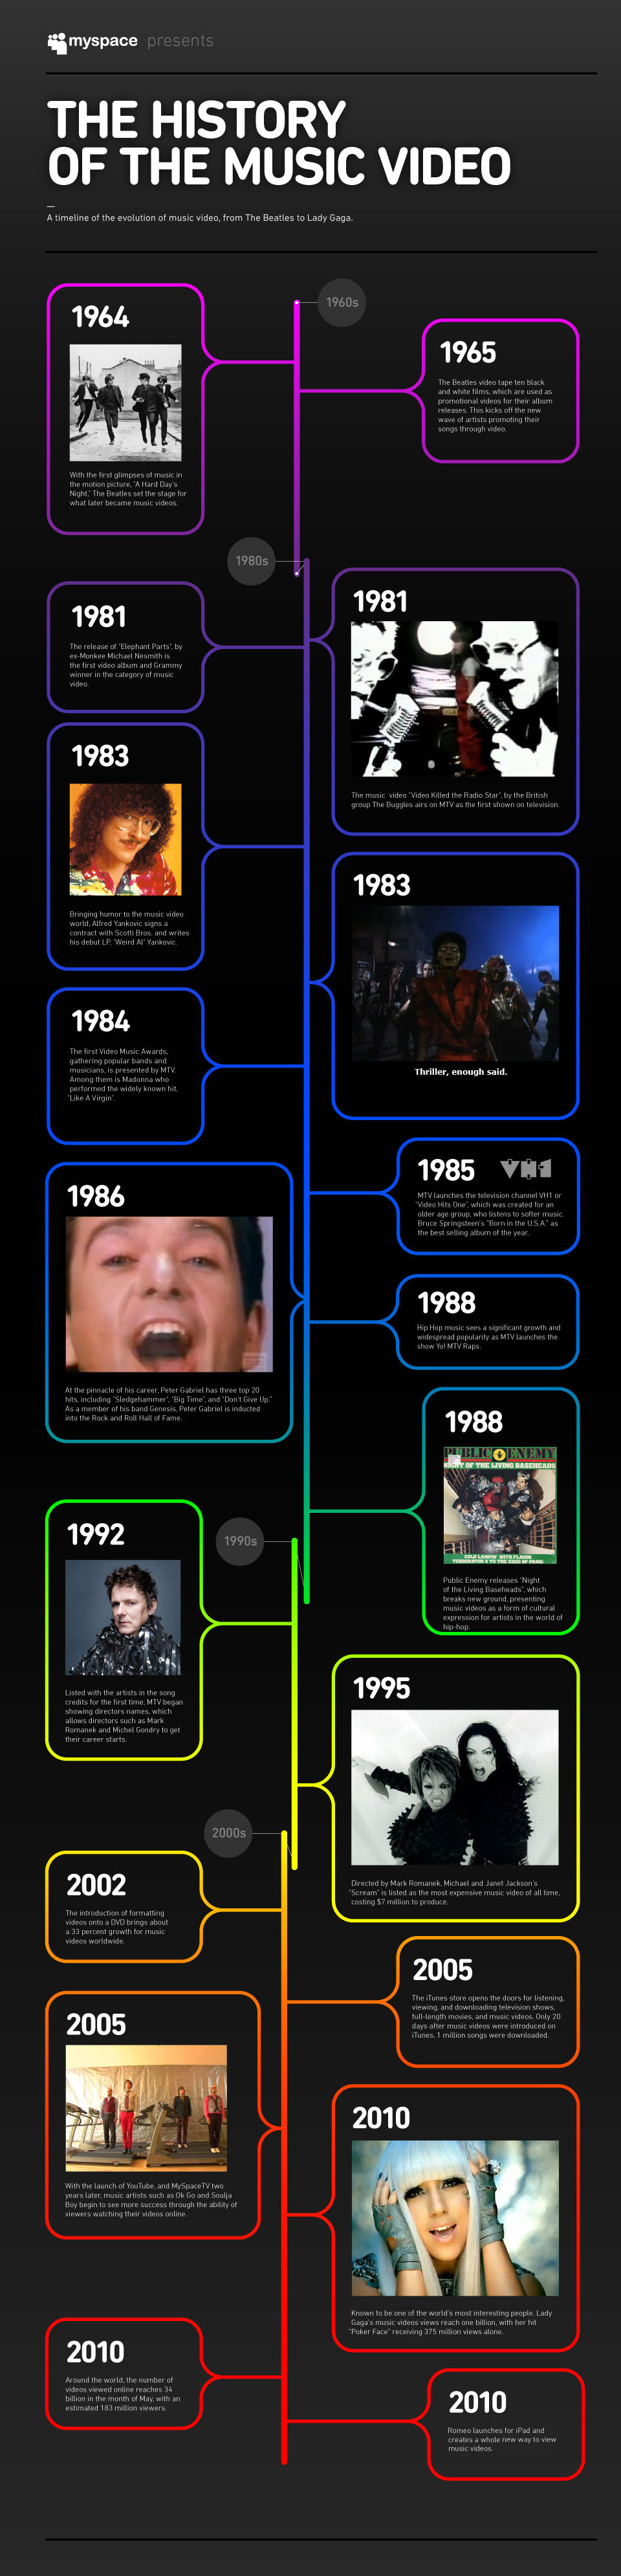 Infographic: The History of the Music Video